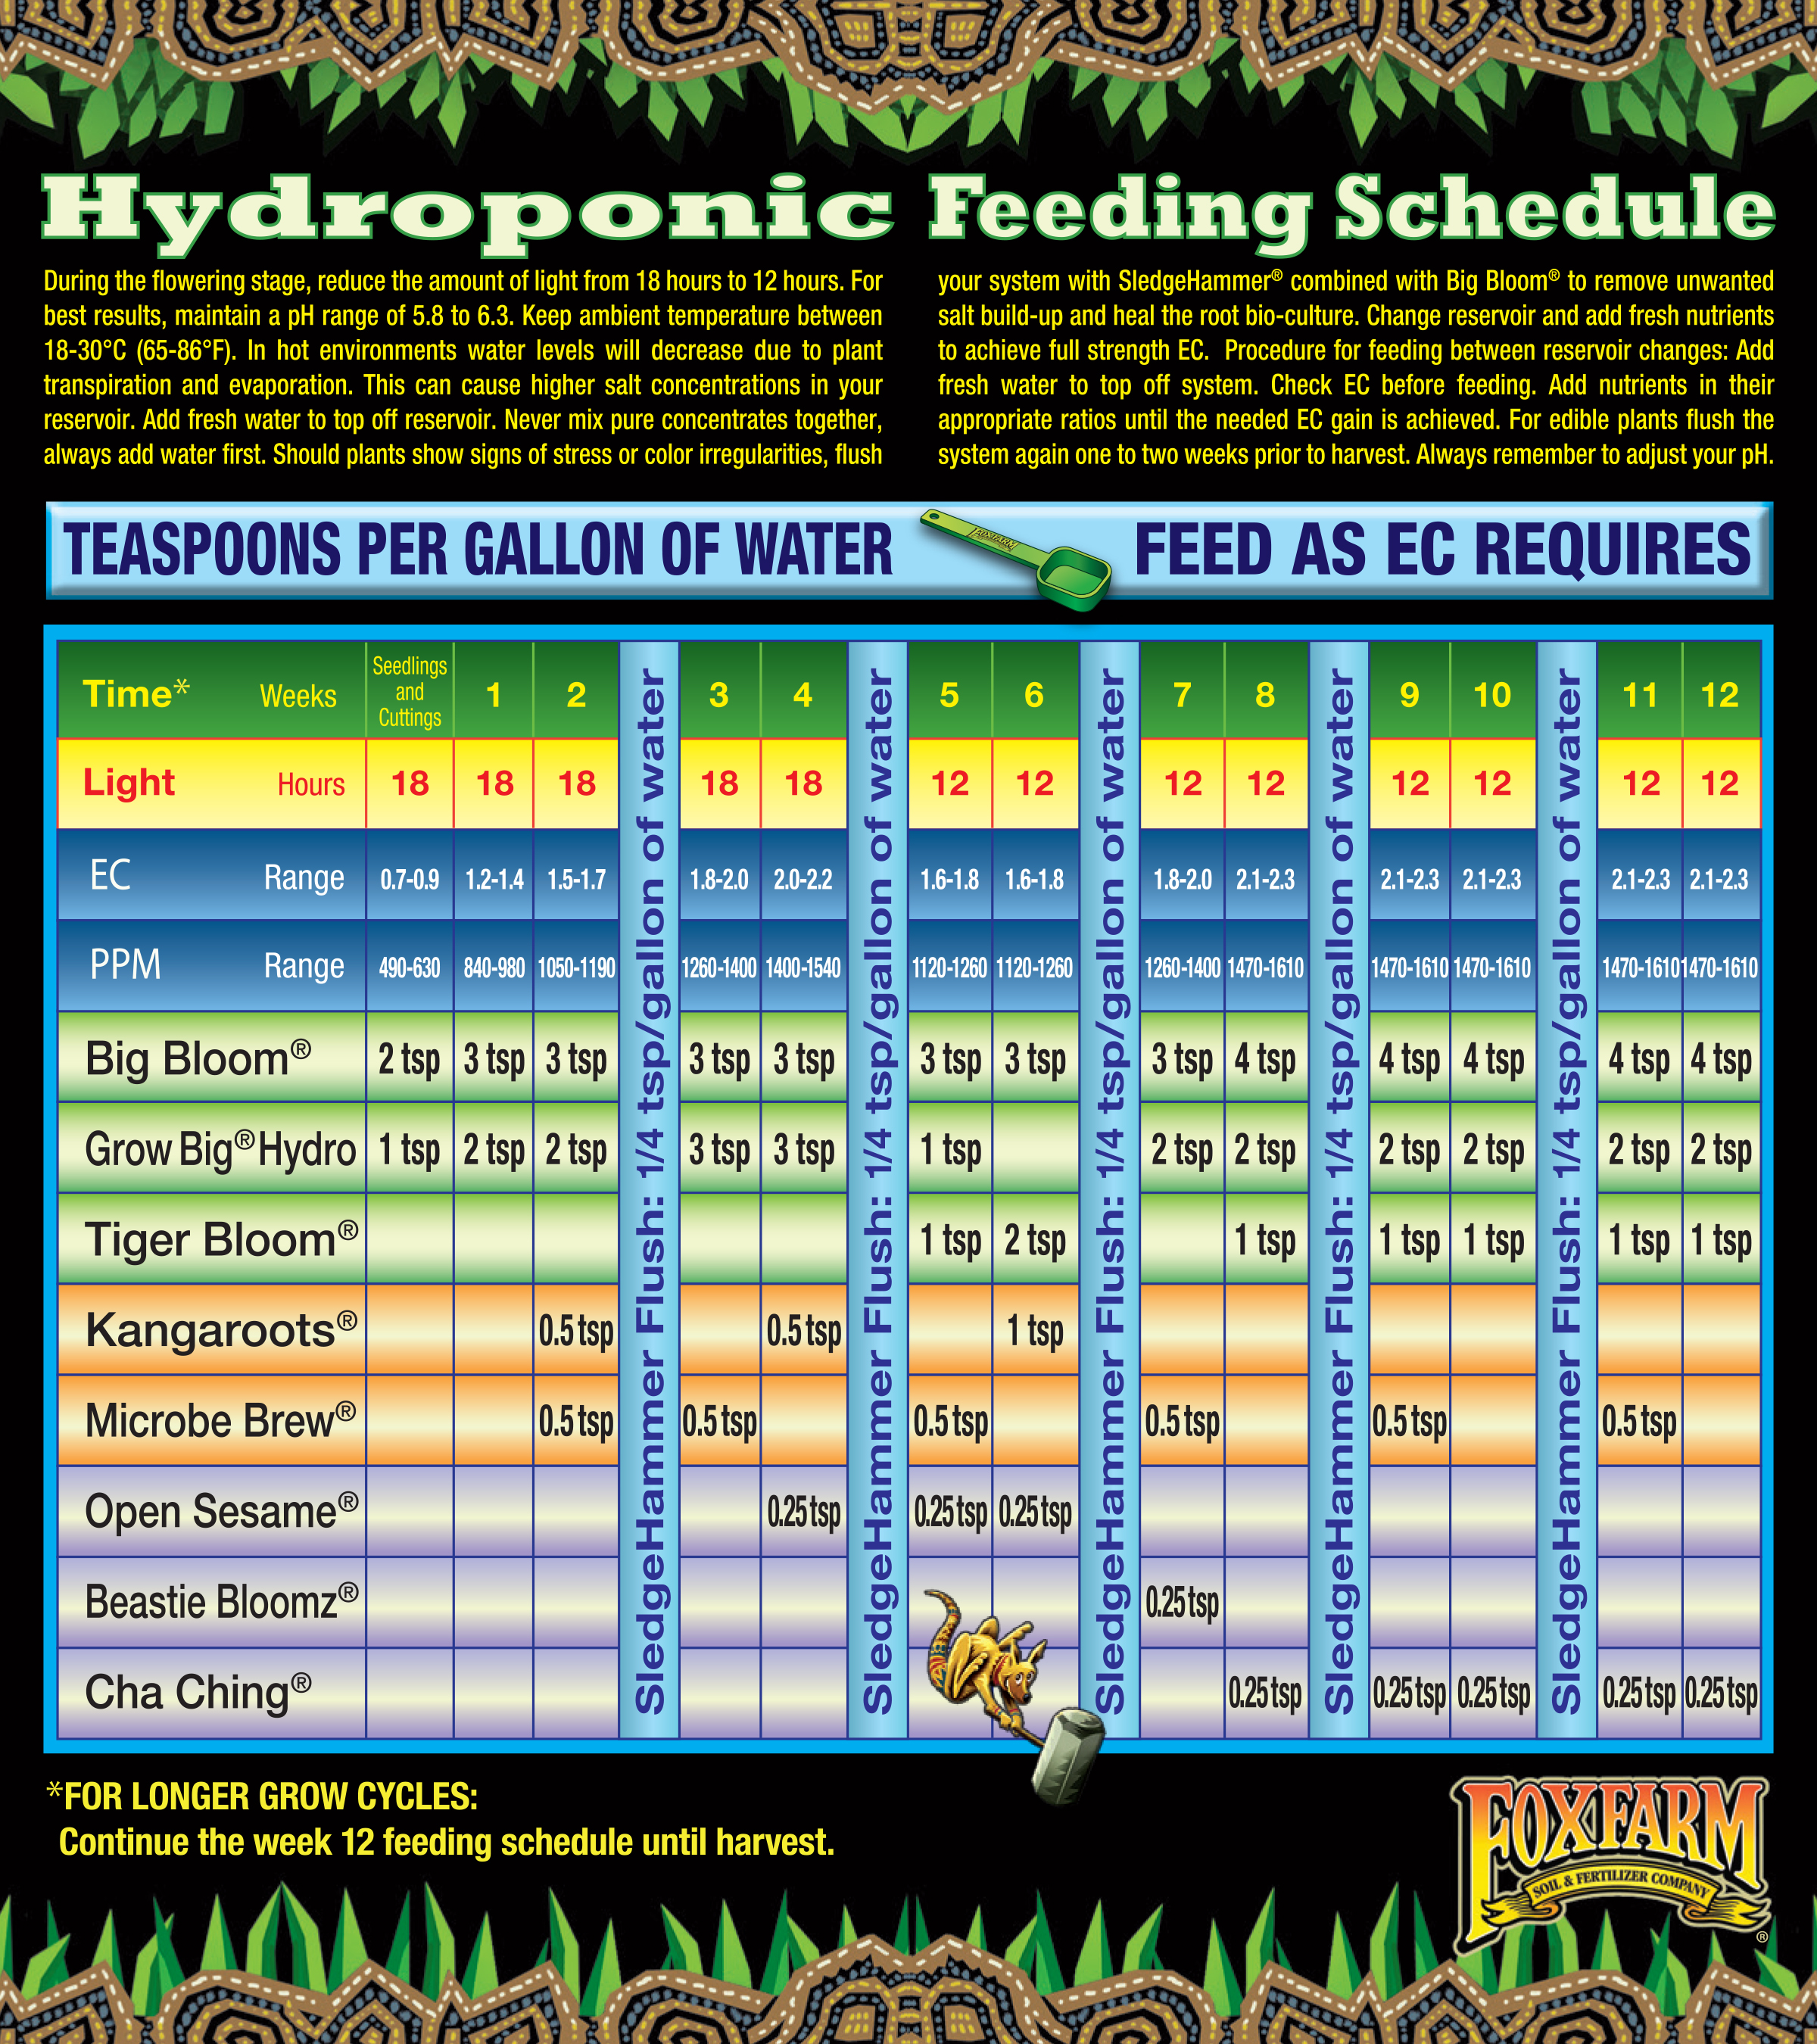 Foxfarm feeding schedule tri city garden supply - House garden nutrient calculator ...